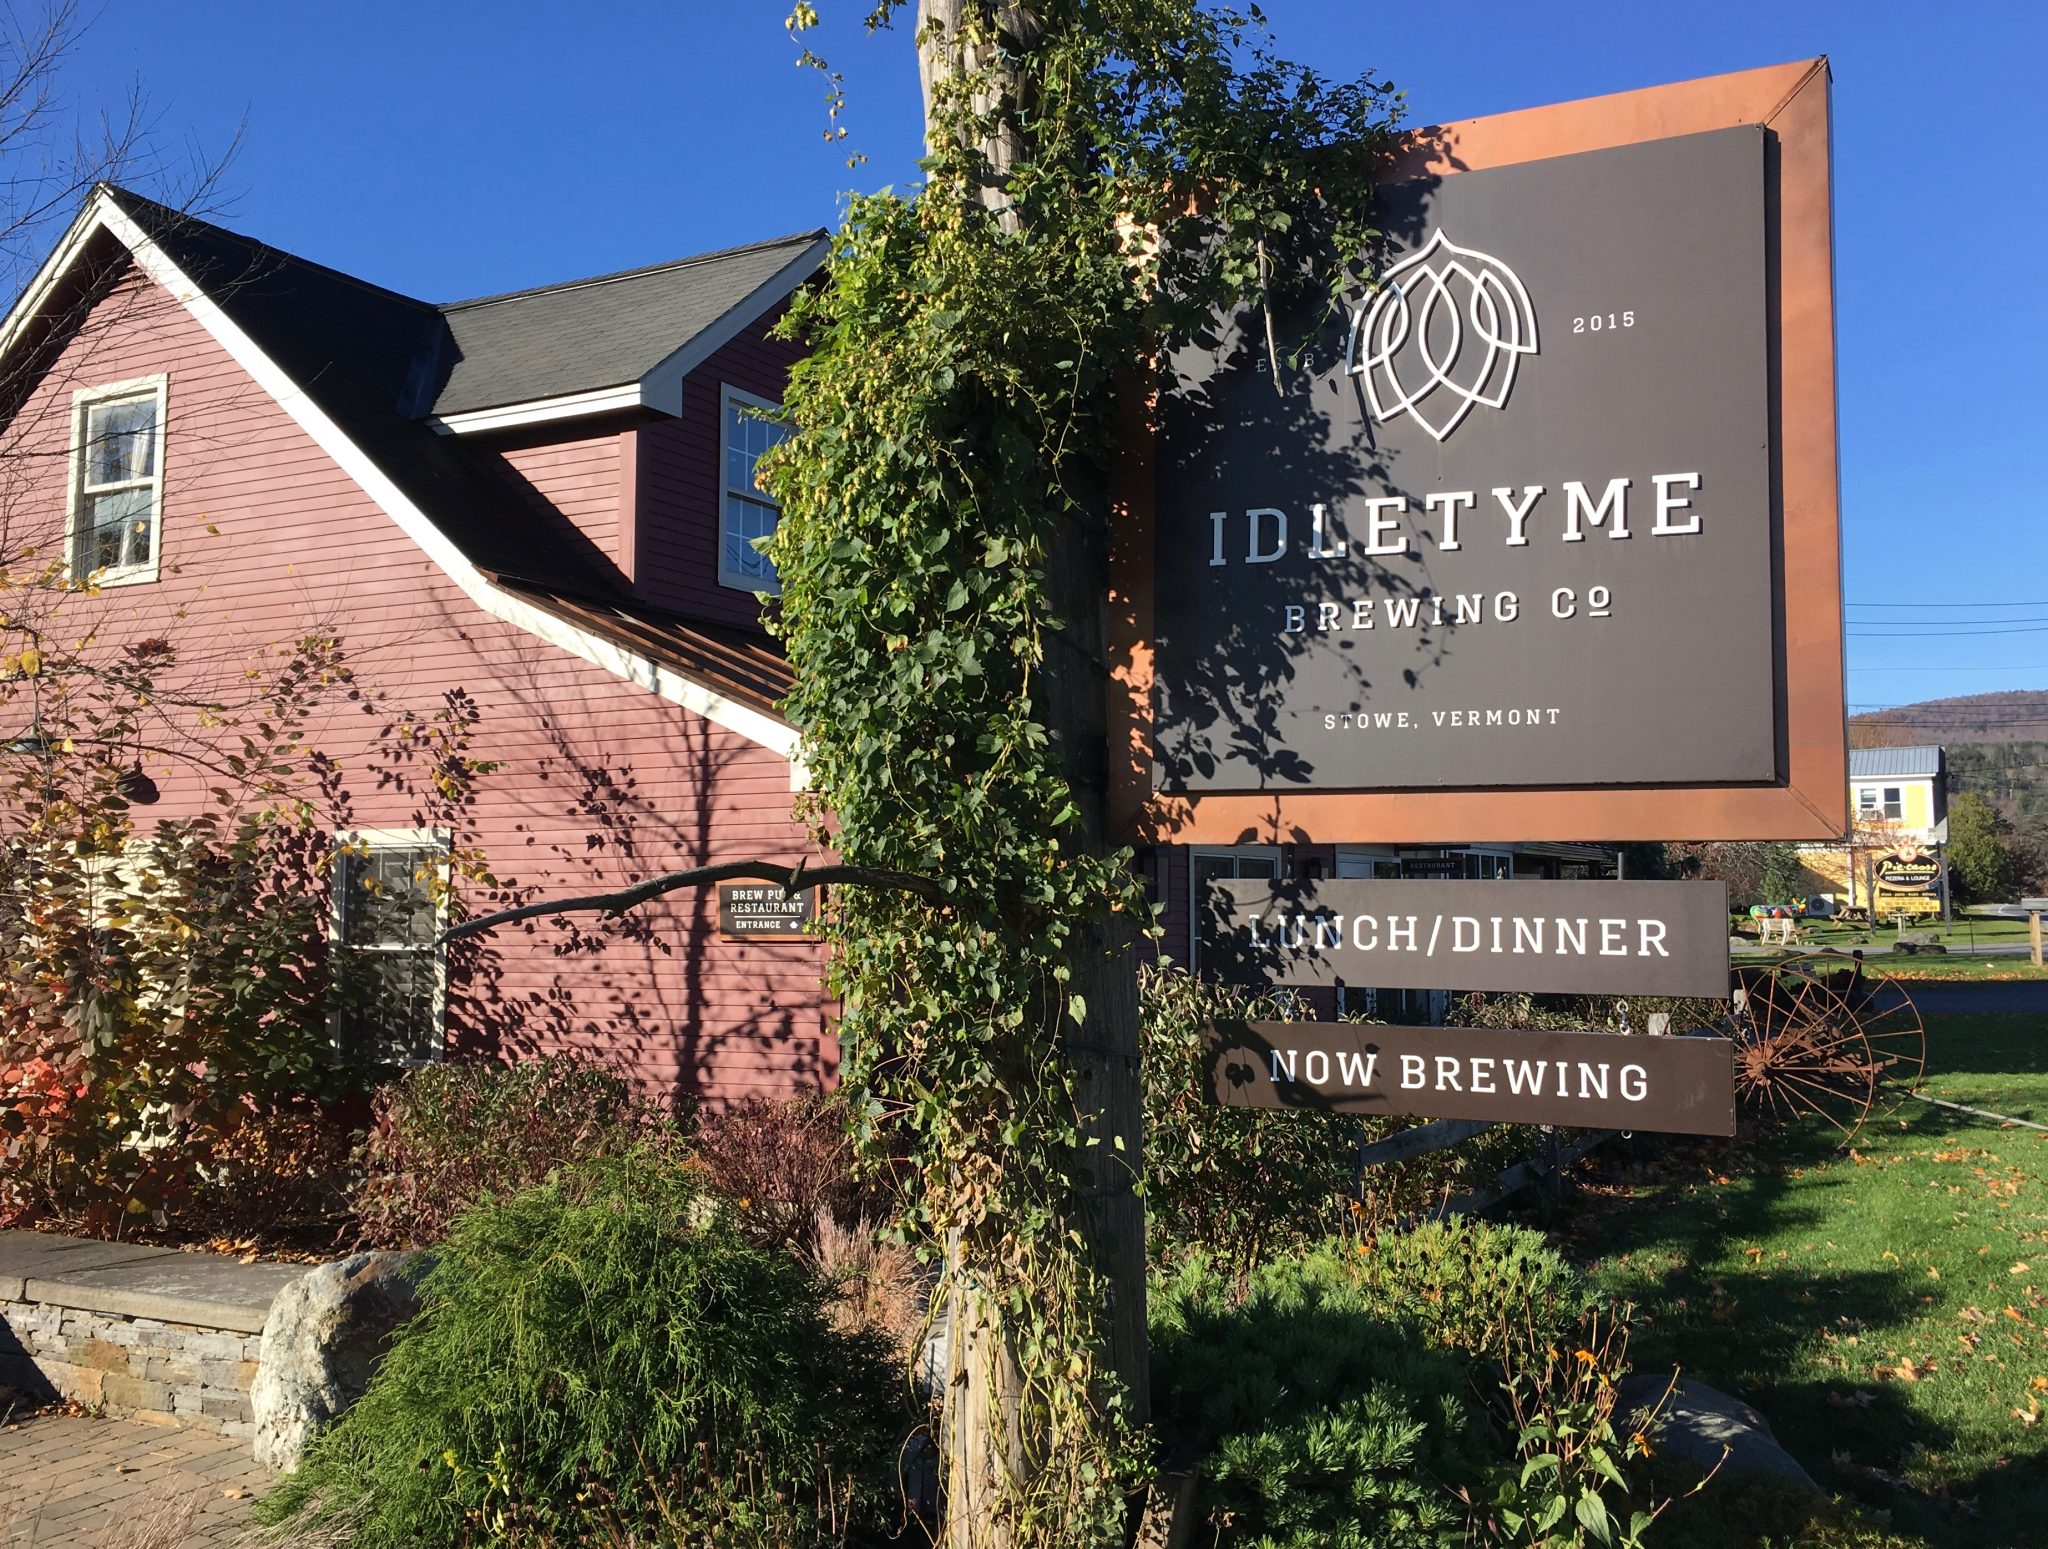 Idletyme Brewery